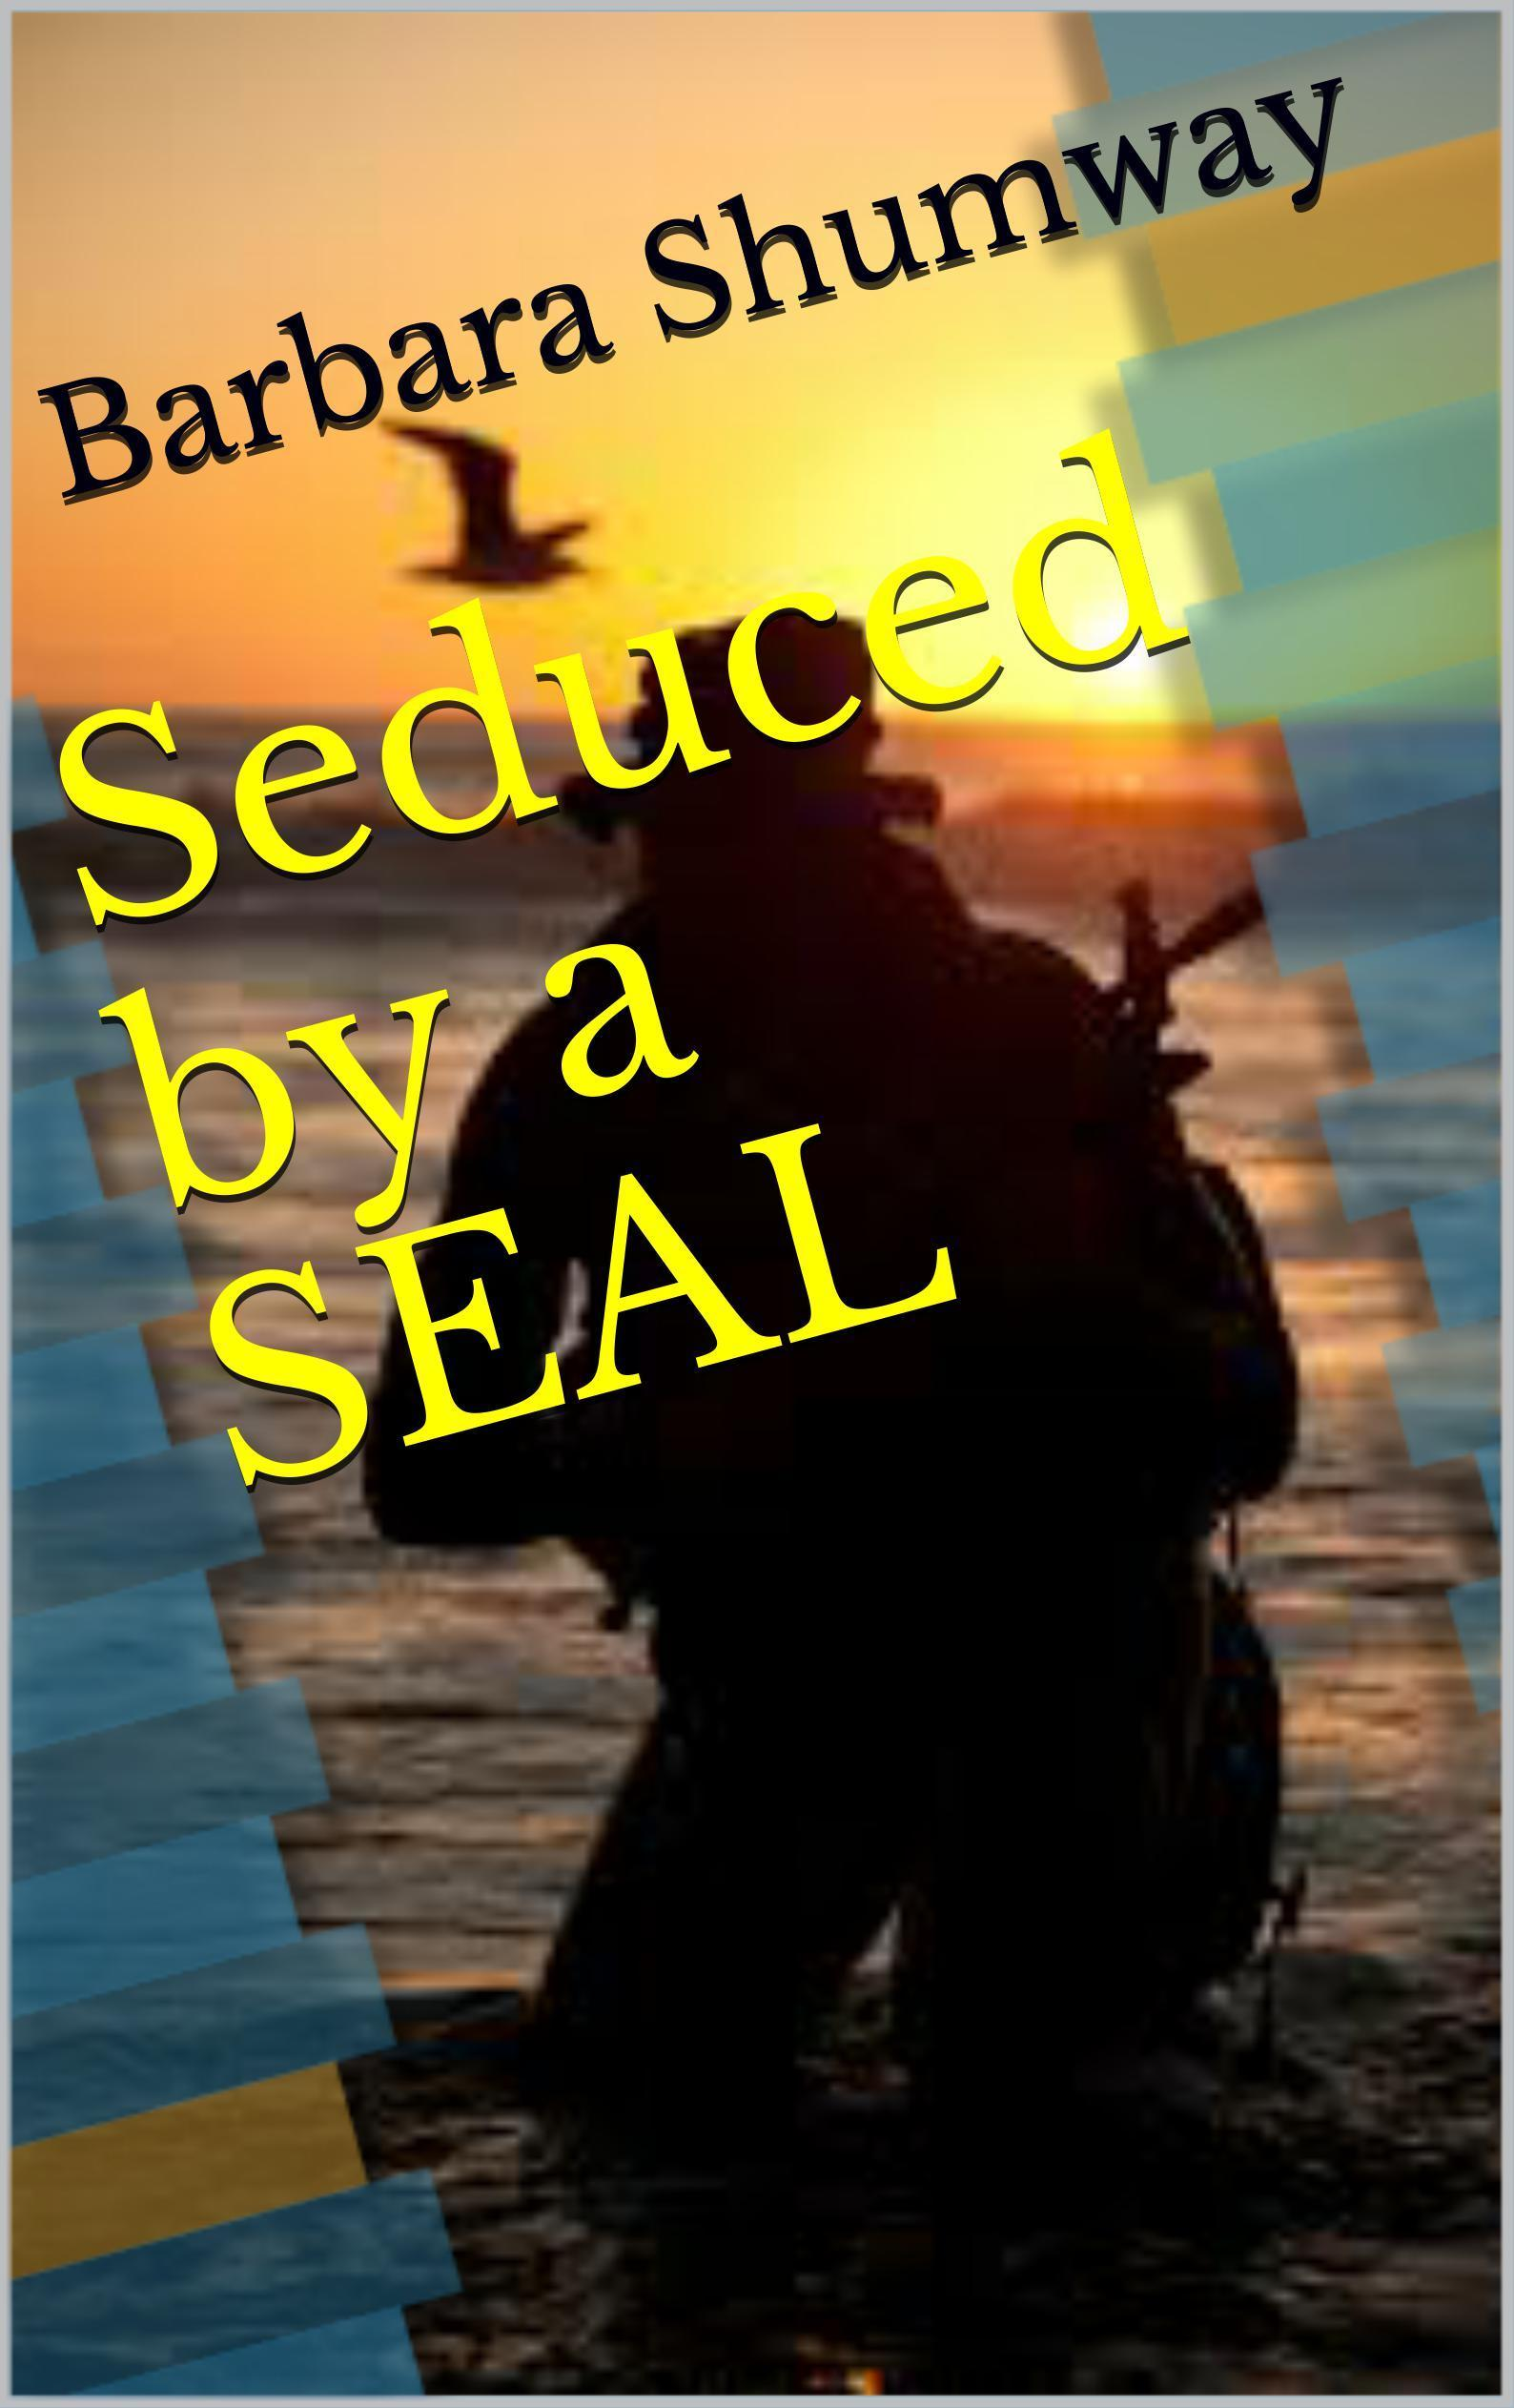 Seduced  by  a SEAL by Barbara Shumway